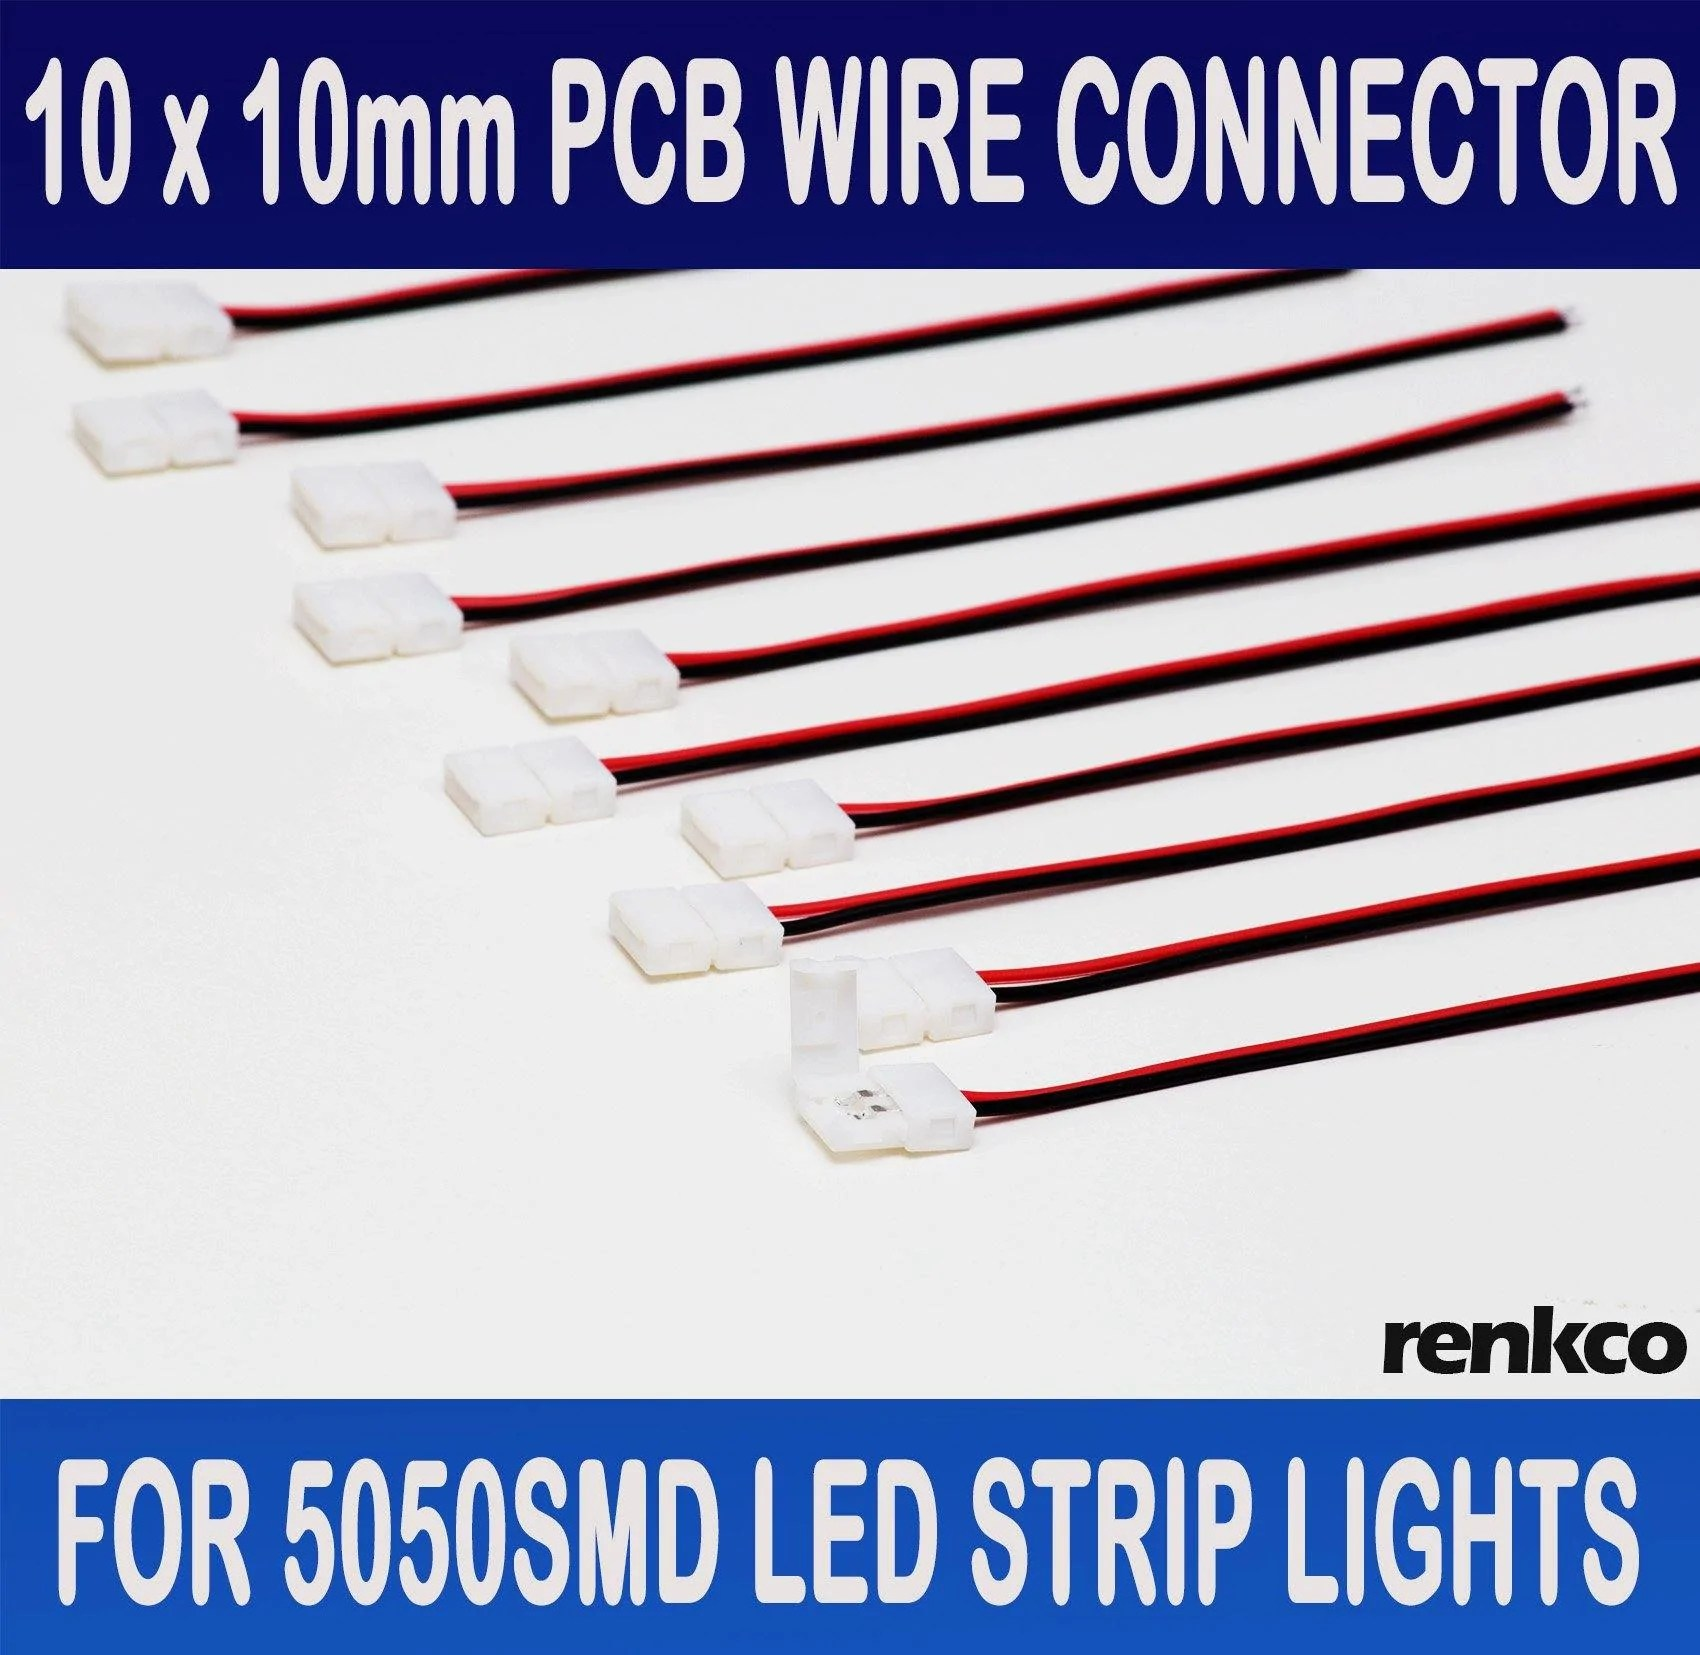 hight resolution of renkco renkco 10pcs 10mm pcb board with wire connector for 5050 led strip lights oz